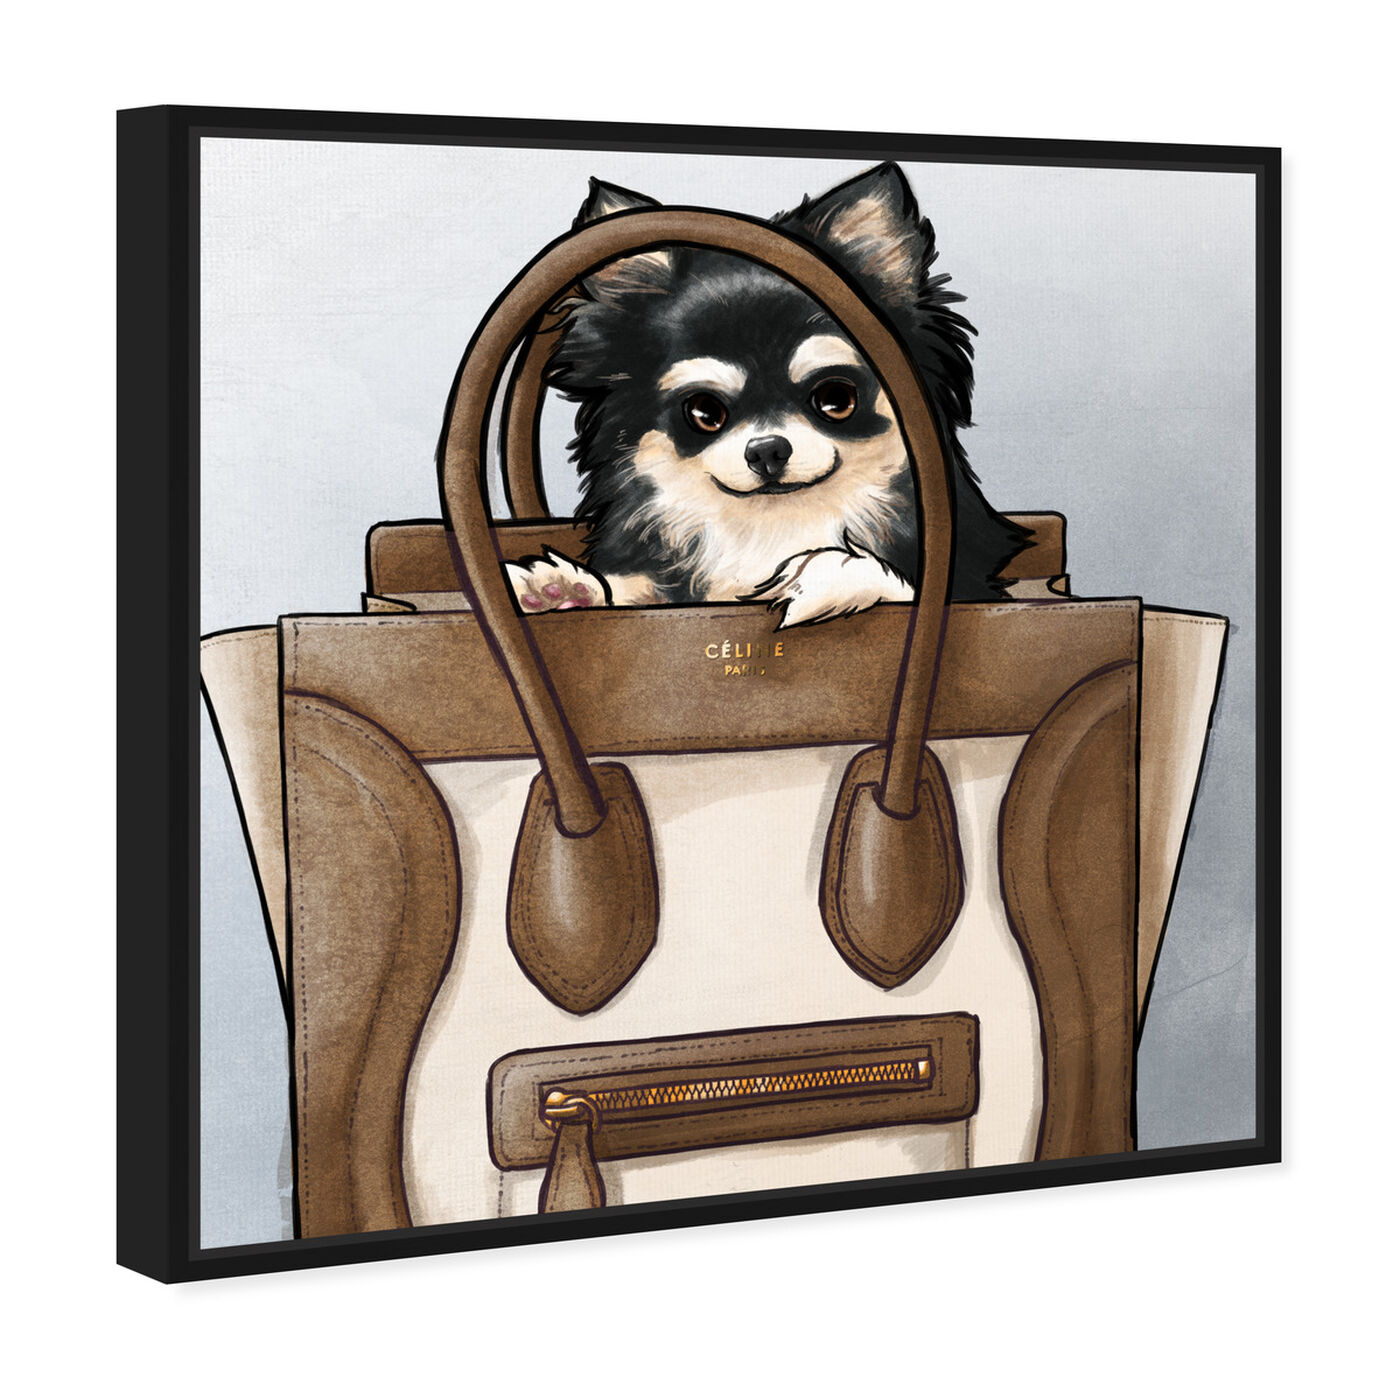 Angled view of Friendly Peek Light featuring fashion and glam and handbags art.